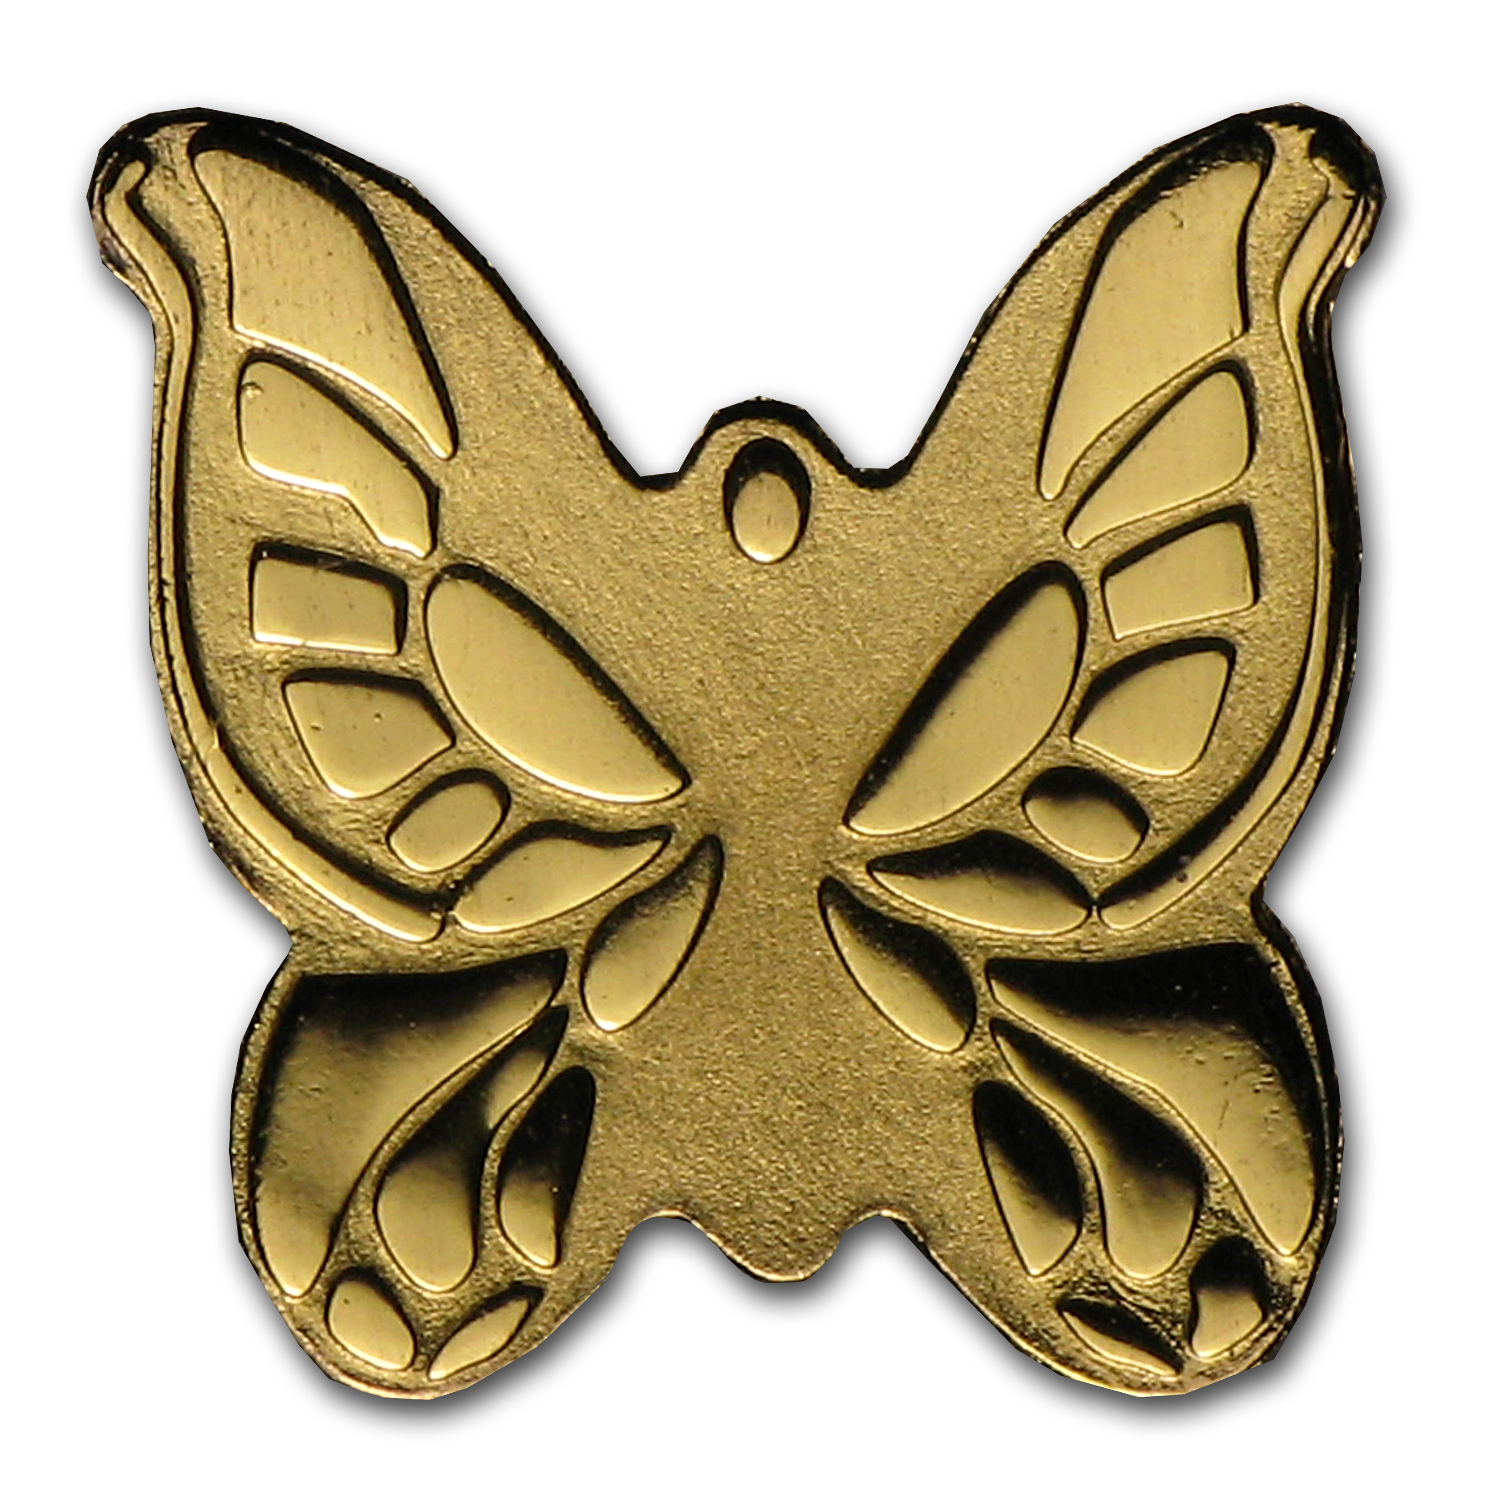 Palau 1/2 gram Gold $1 Golden Butterfly Coin